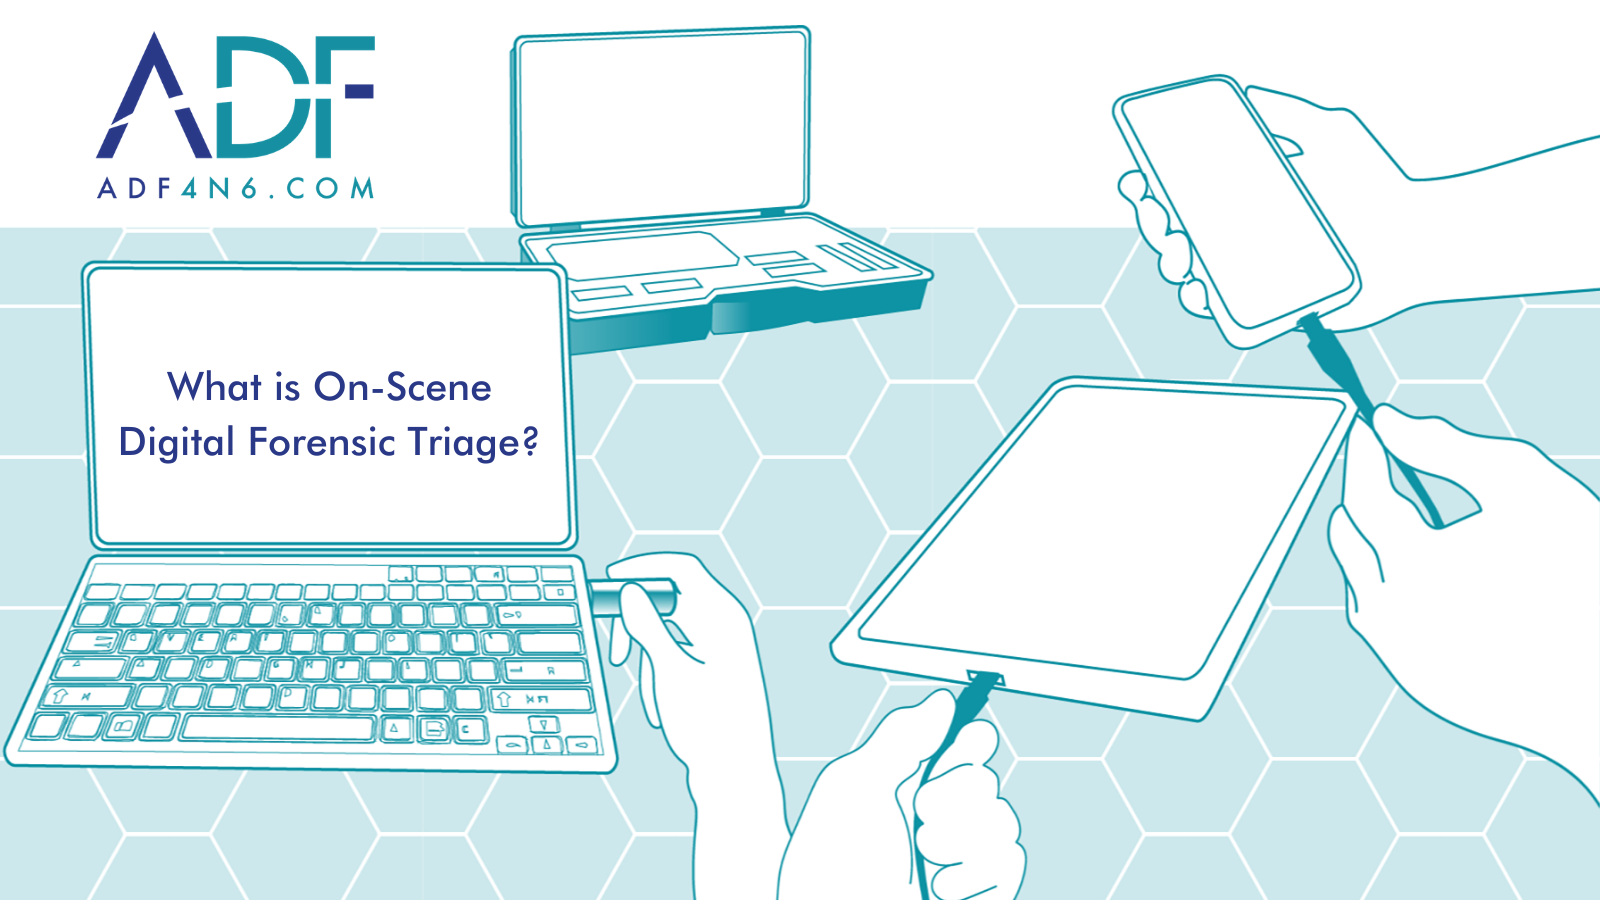 What is On-Scene Digital Forensic Triage?